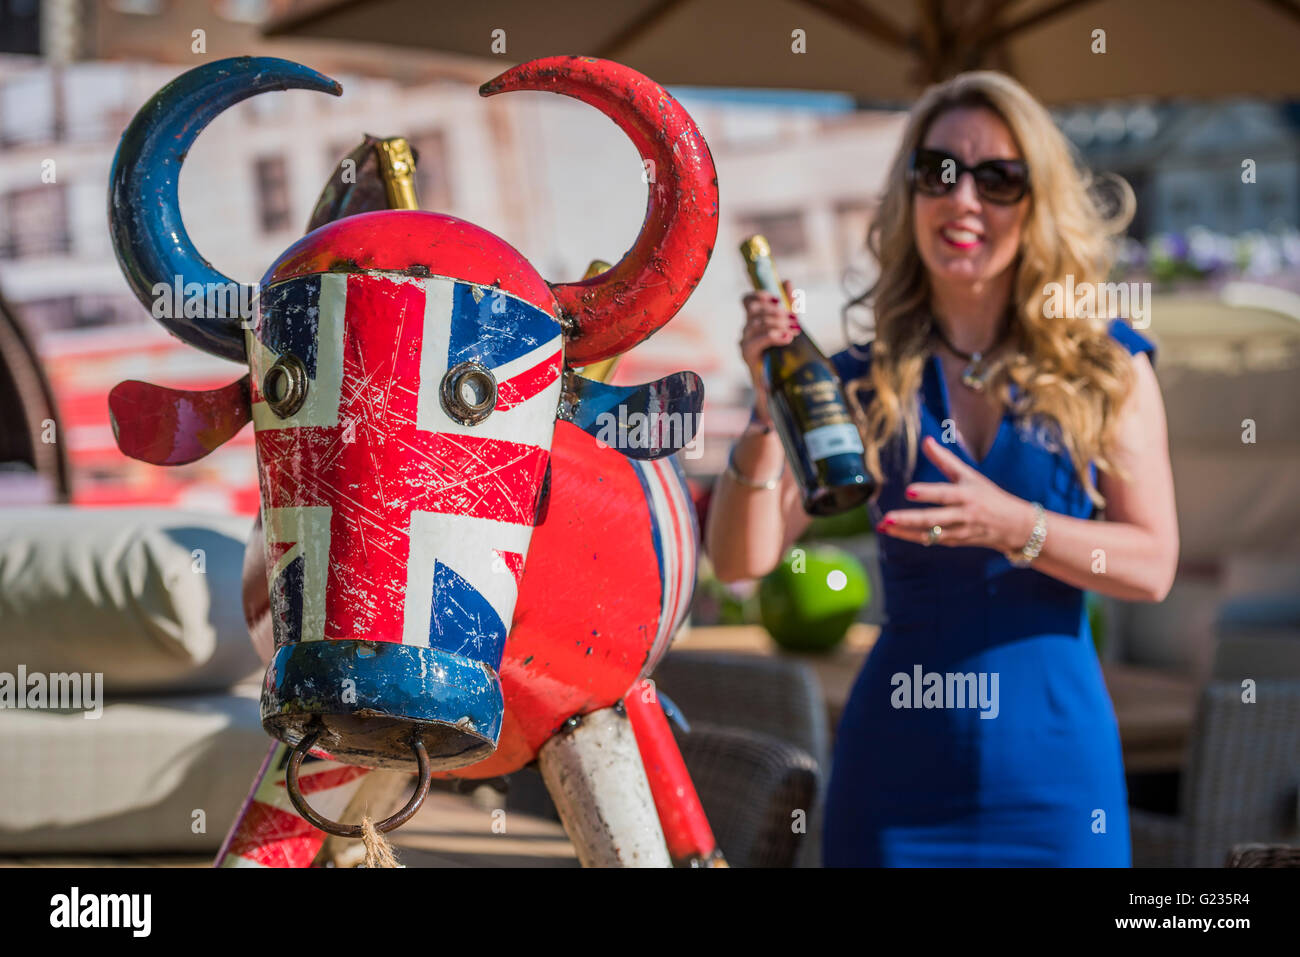 london uk 23rd may 2016 the garden furniture centre stand credit guy bellalamy live news